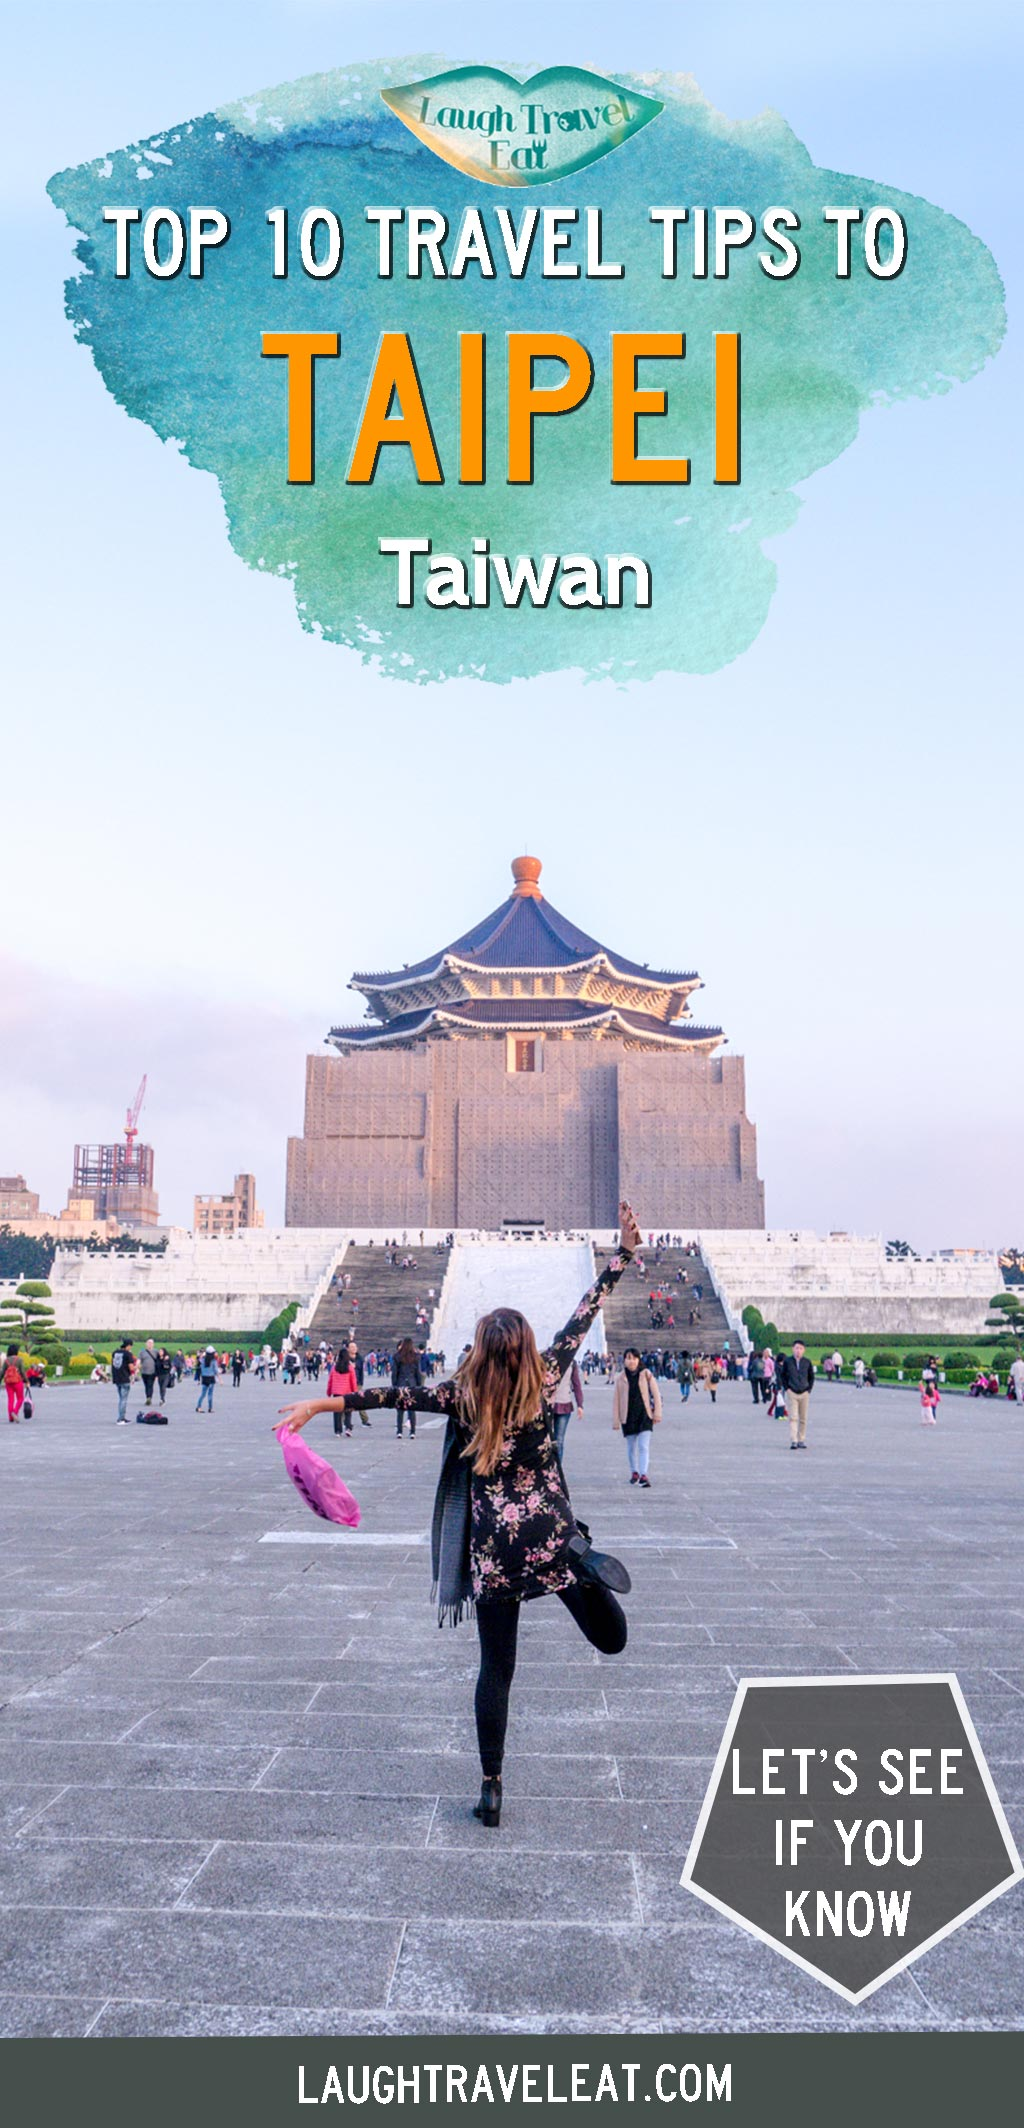 Heading to Taipei? Here's 10 useful and funny travel tips for you to make the best of your trip to Taiwan!